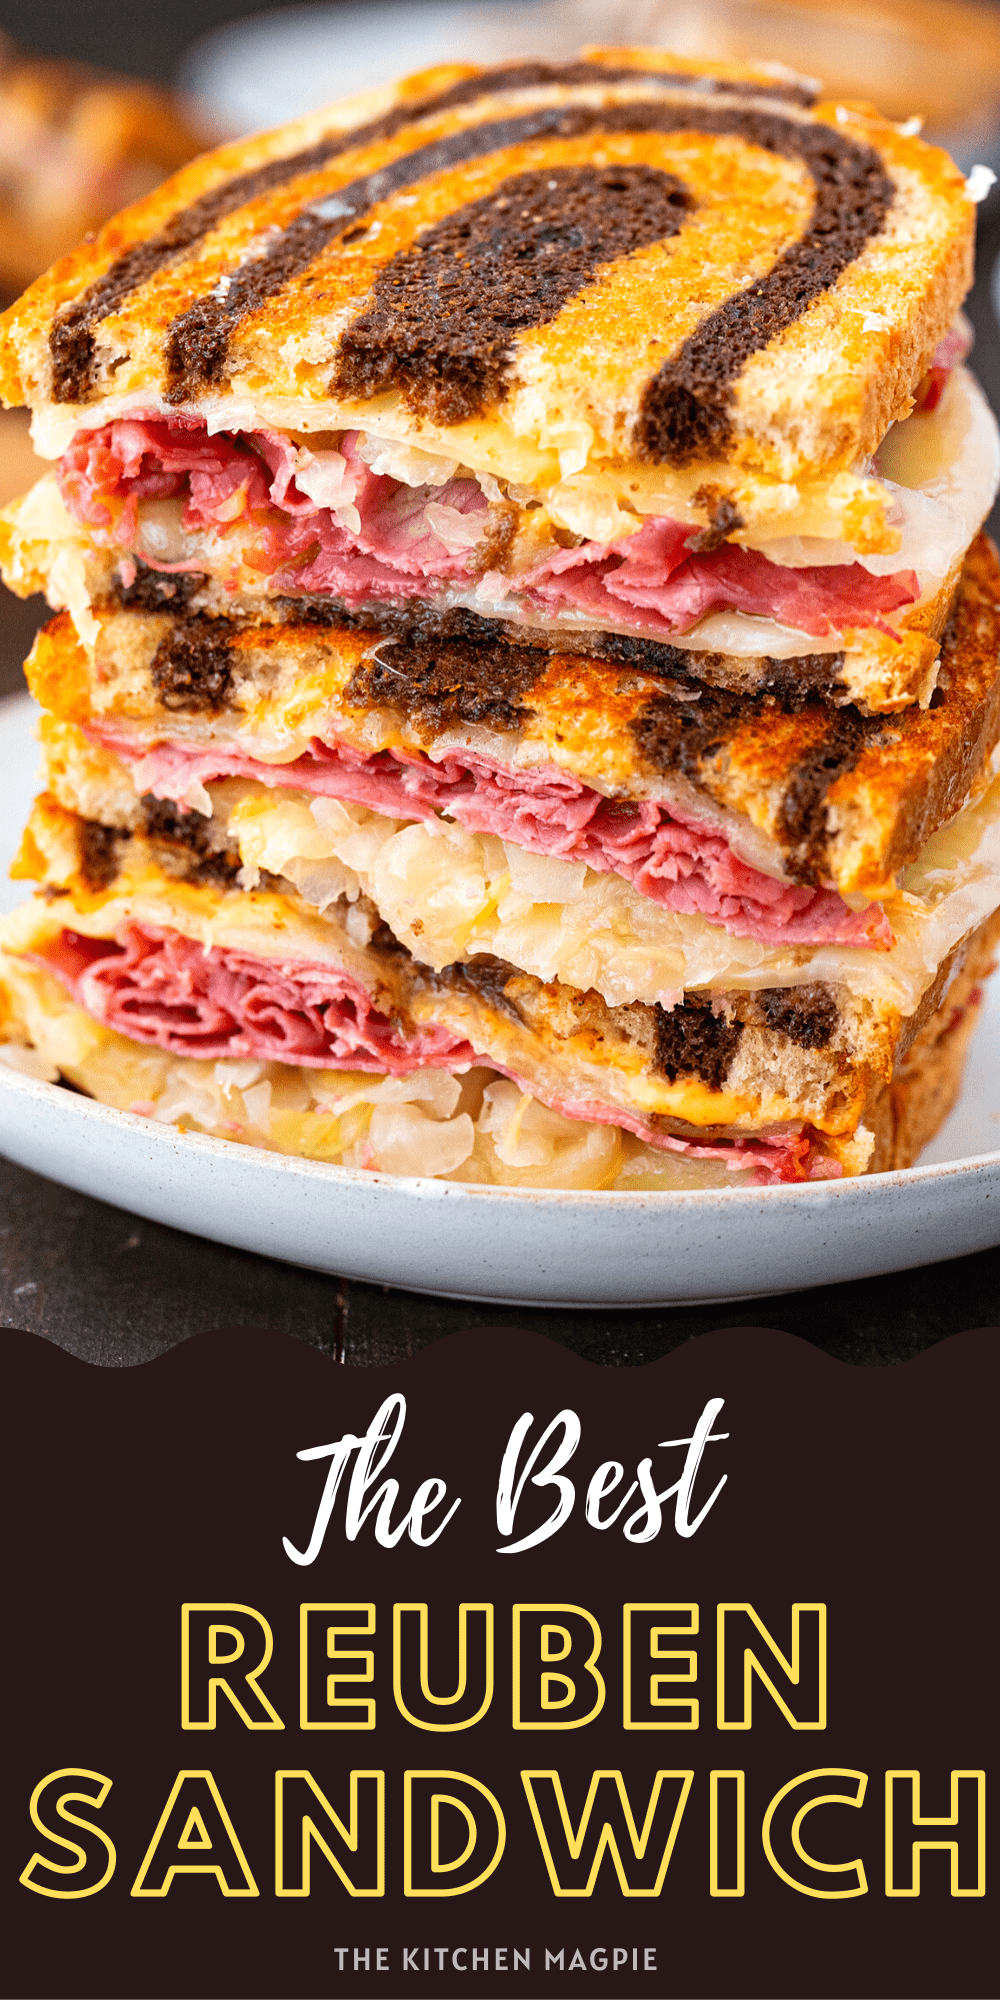 The Best Reuben Sandwich